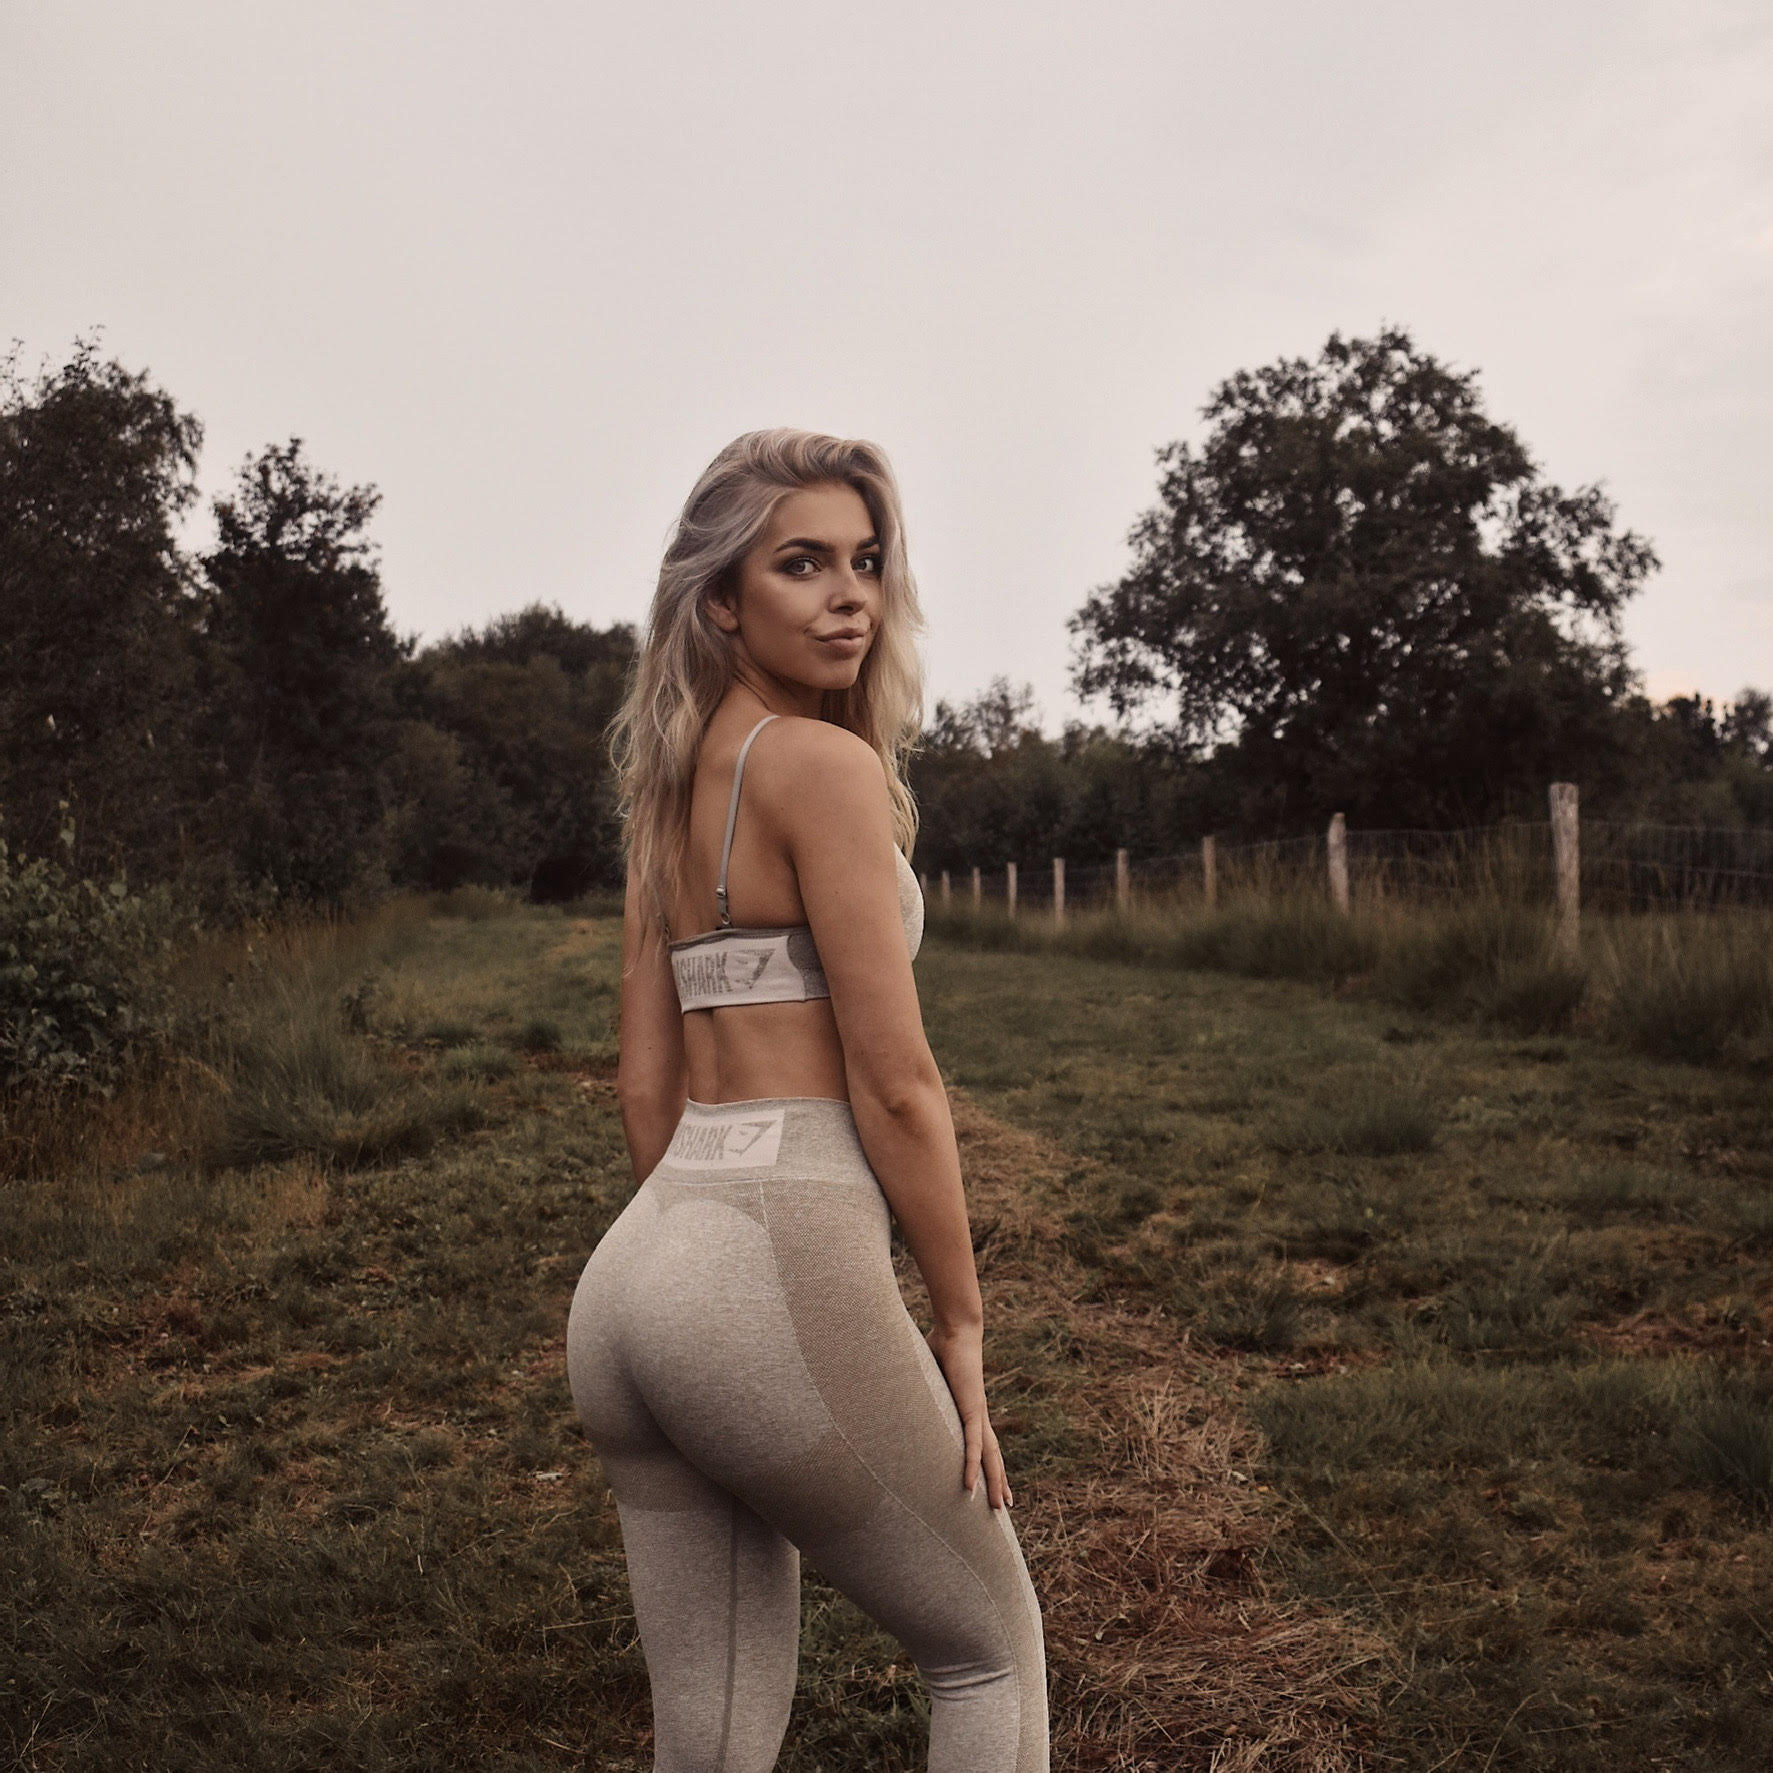 fitgirl